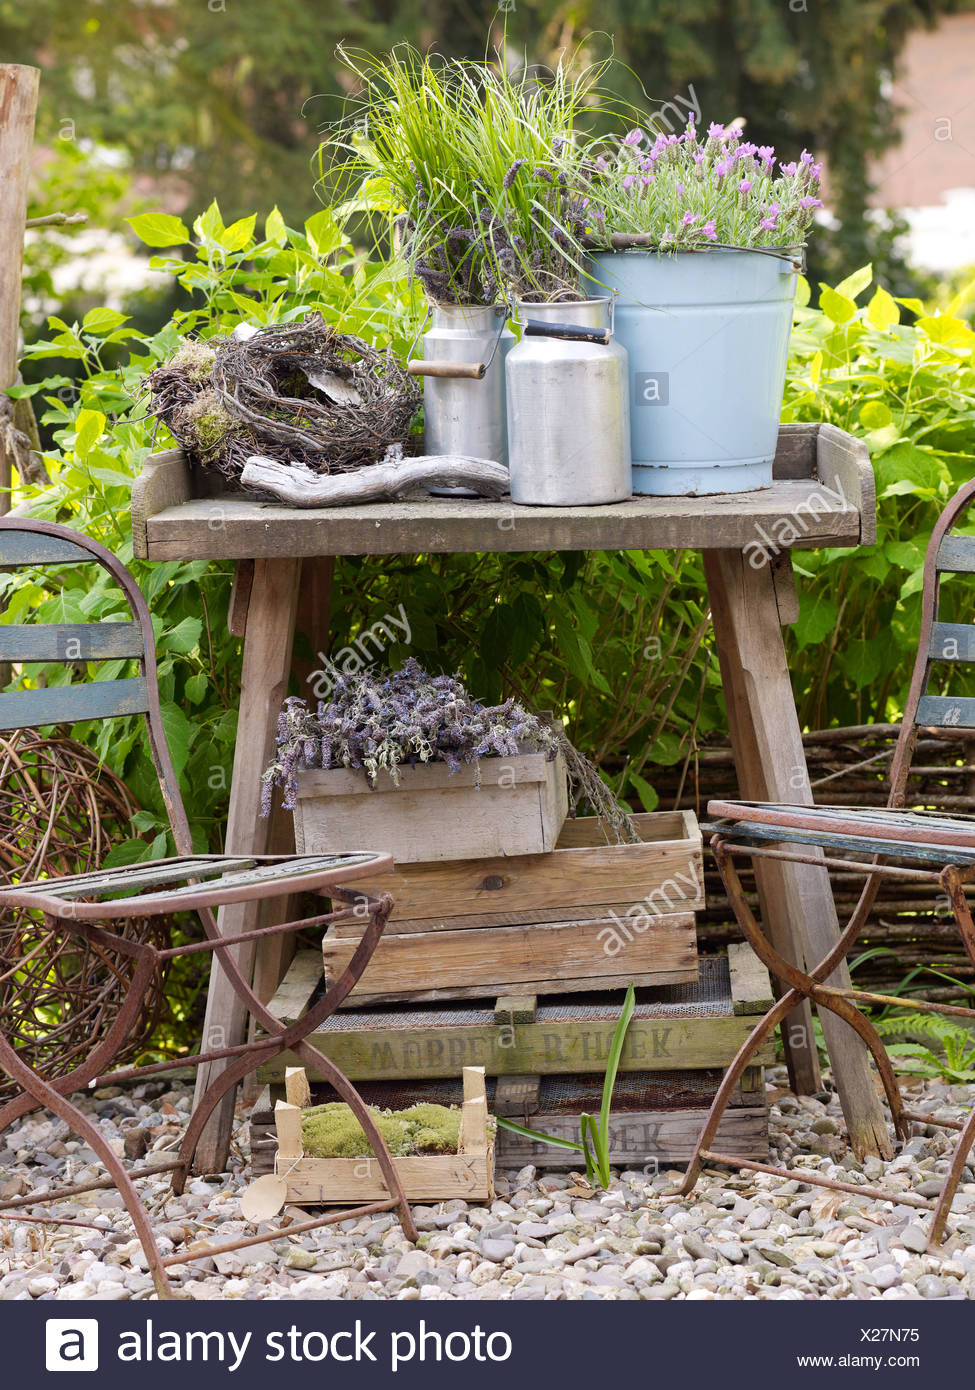 Beau Still Life, Decorative Garden Accessories, Metal Jugs On An Old Wooden  Table In A Romantic Garden